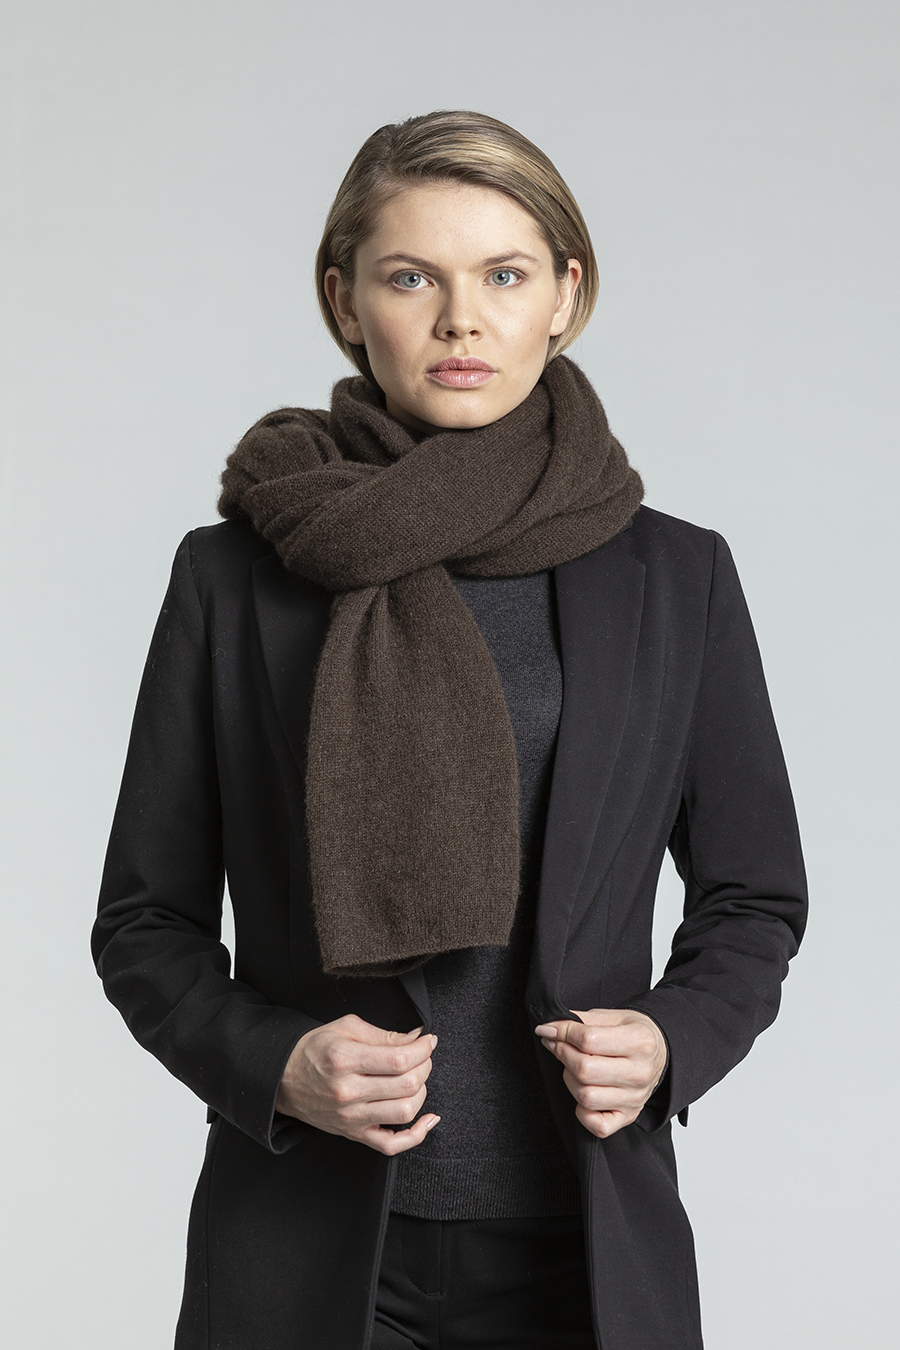 Dinadi - YAK Scarf, Dark Brown